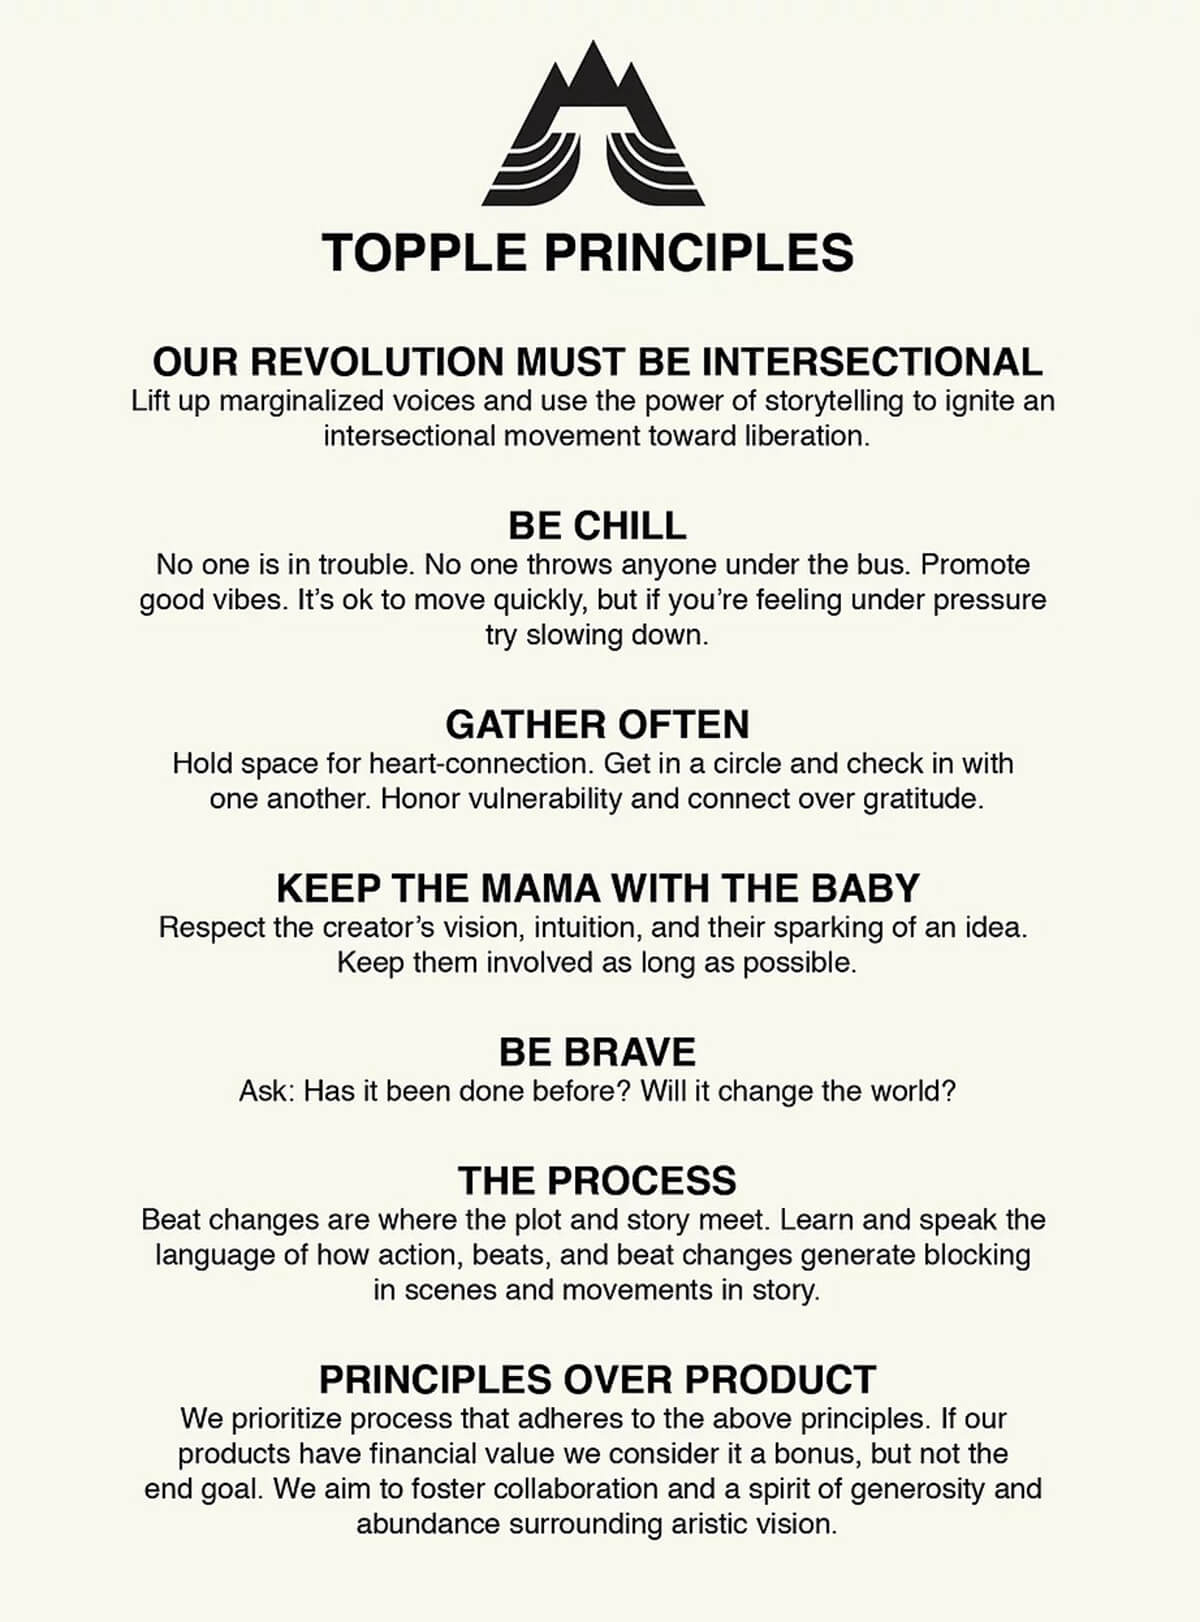 The Principles of Soloway's Topple Productions